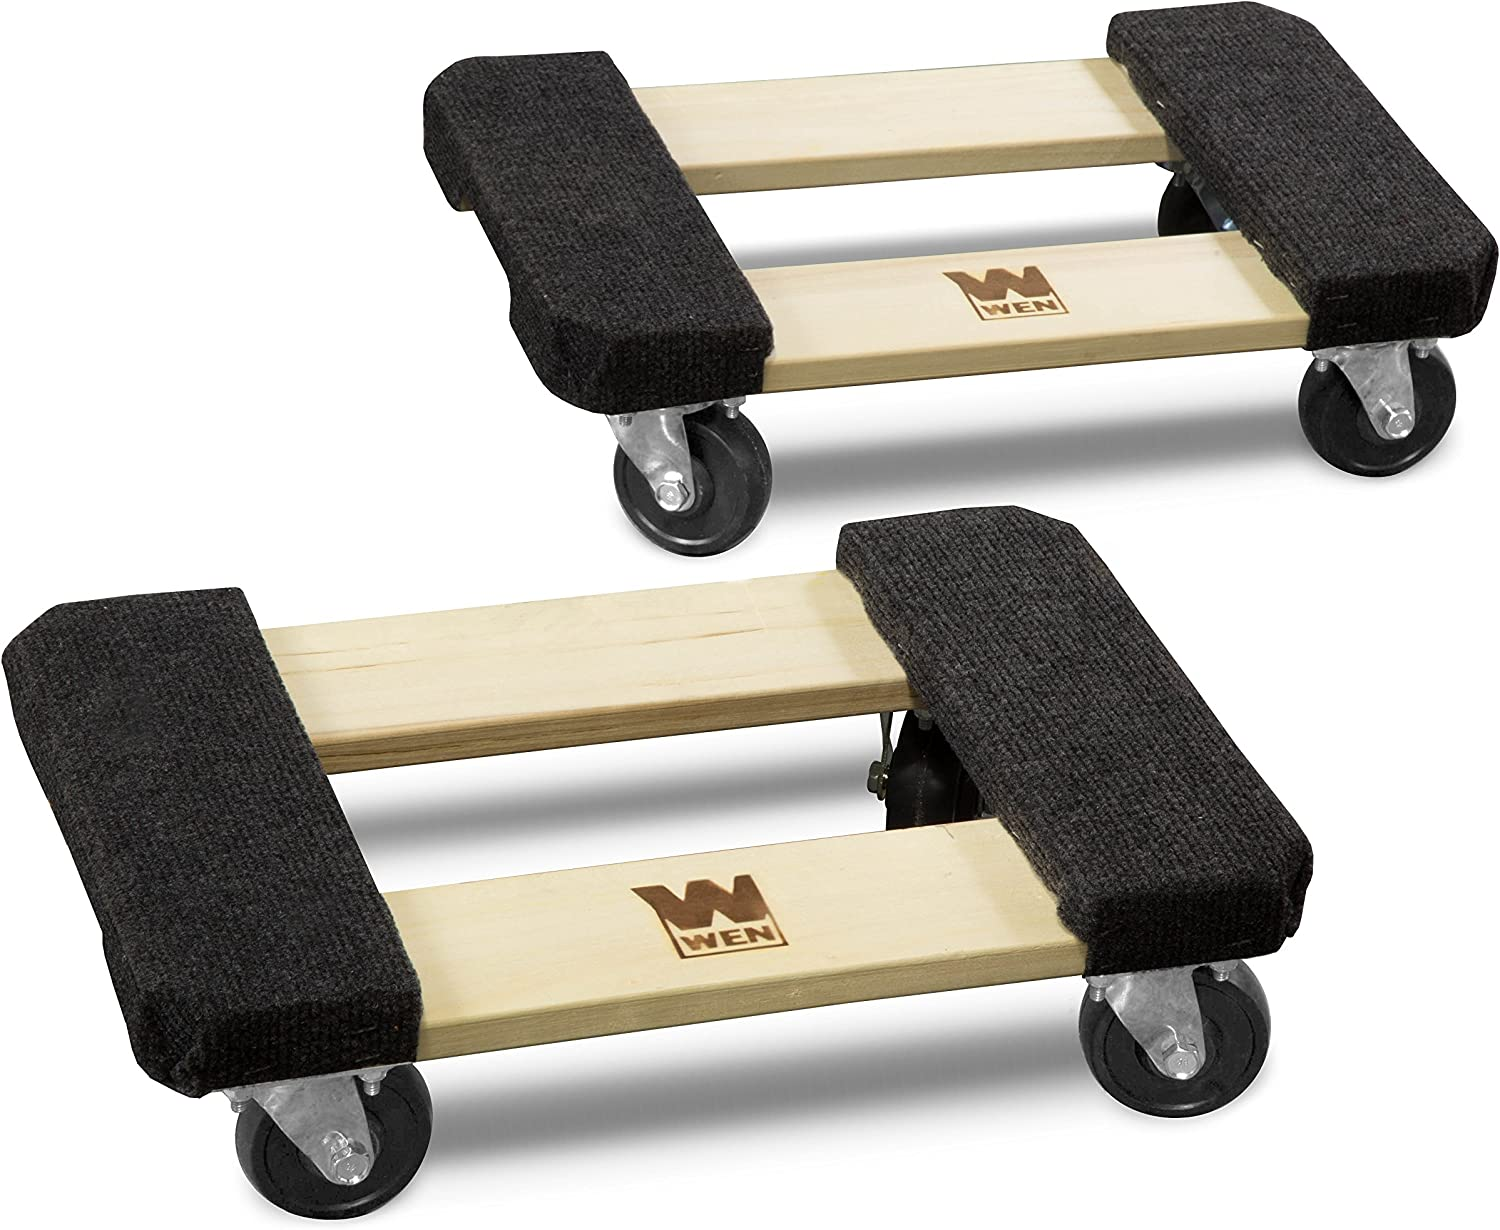 WEN 721218 1320-Pound Capacity 12-by-18-Inch Hardwood Furniture Dolly, 2-Pack